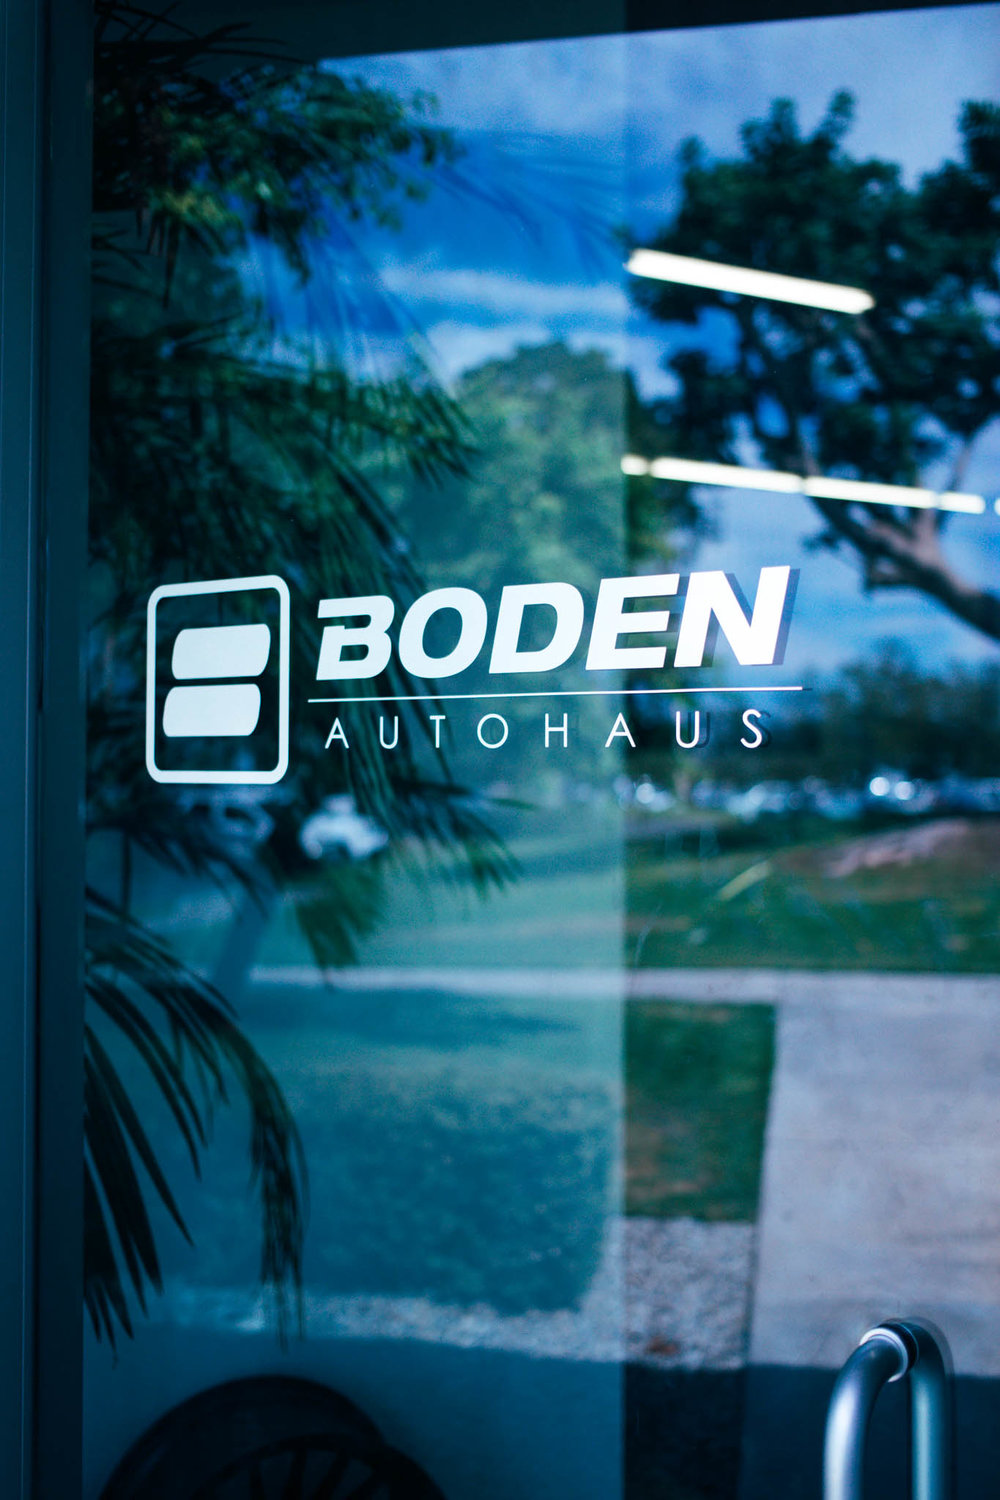 Stay_Driven_Boden_Autohaus_Shop_Tour_M-16.jpg